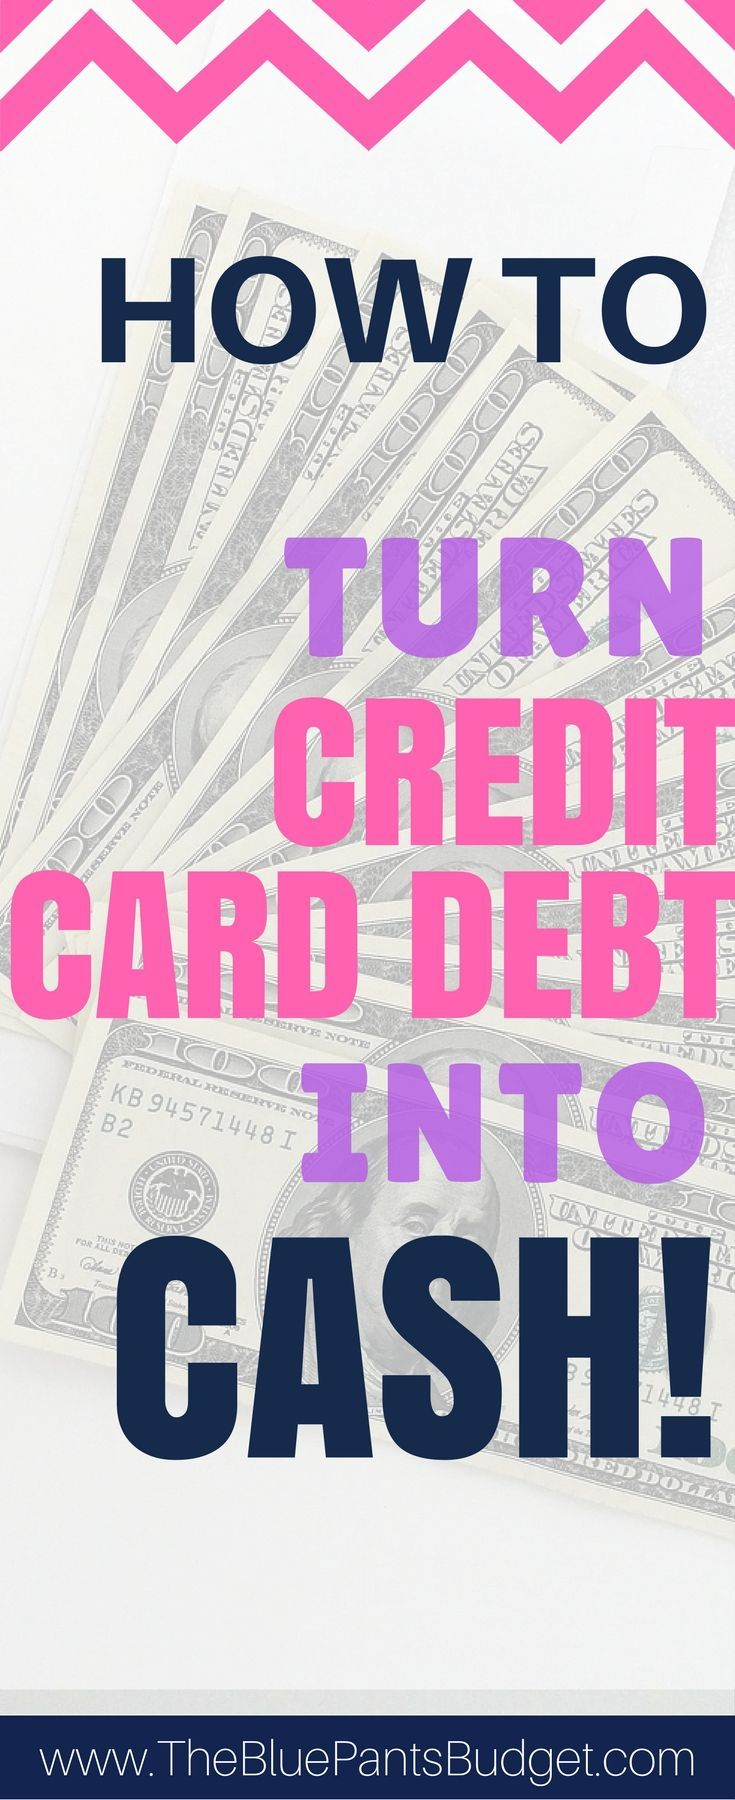 How to Turn Credit Card Debt into Cash (With images) | Rewards credit cards, Credit cards debt ...